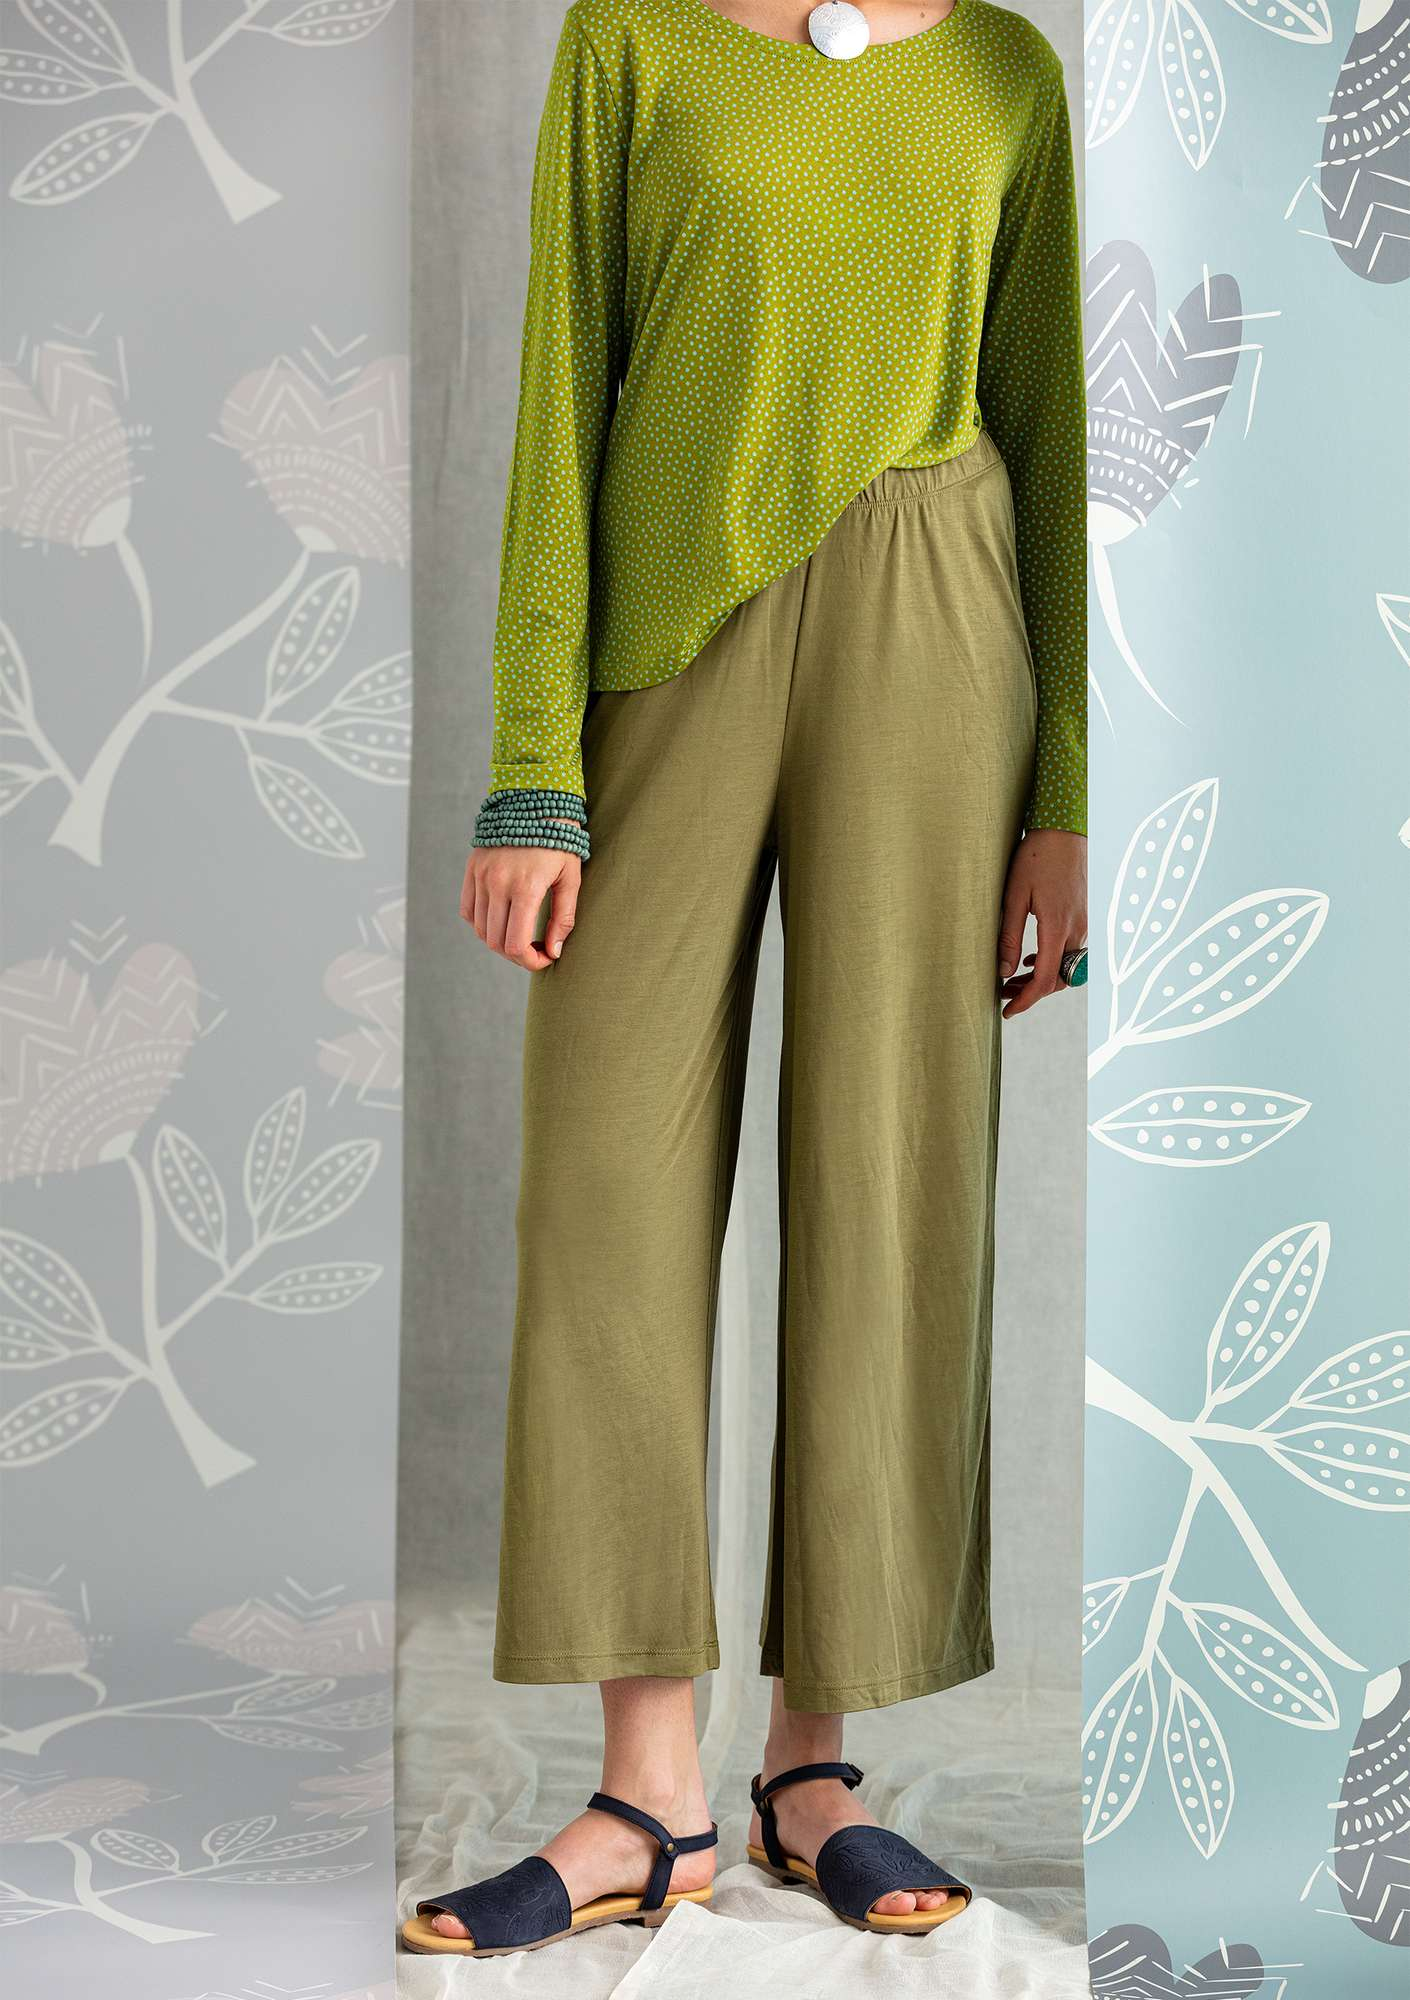 Solid-colored jersey pants eucalyptus